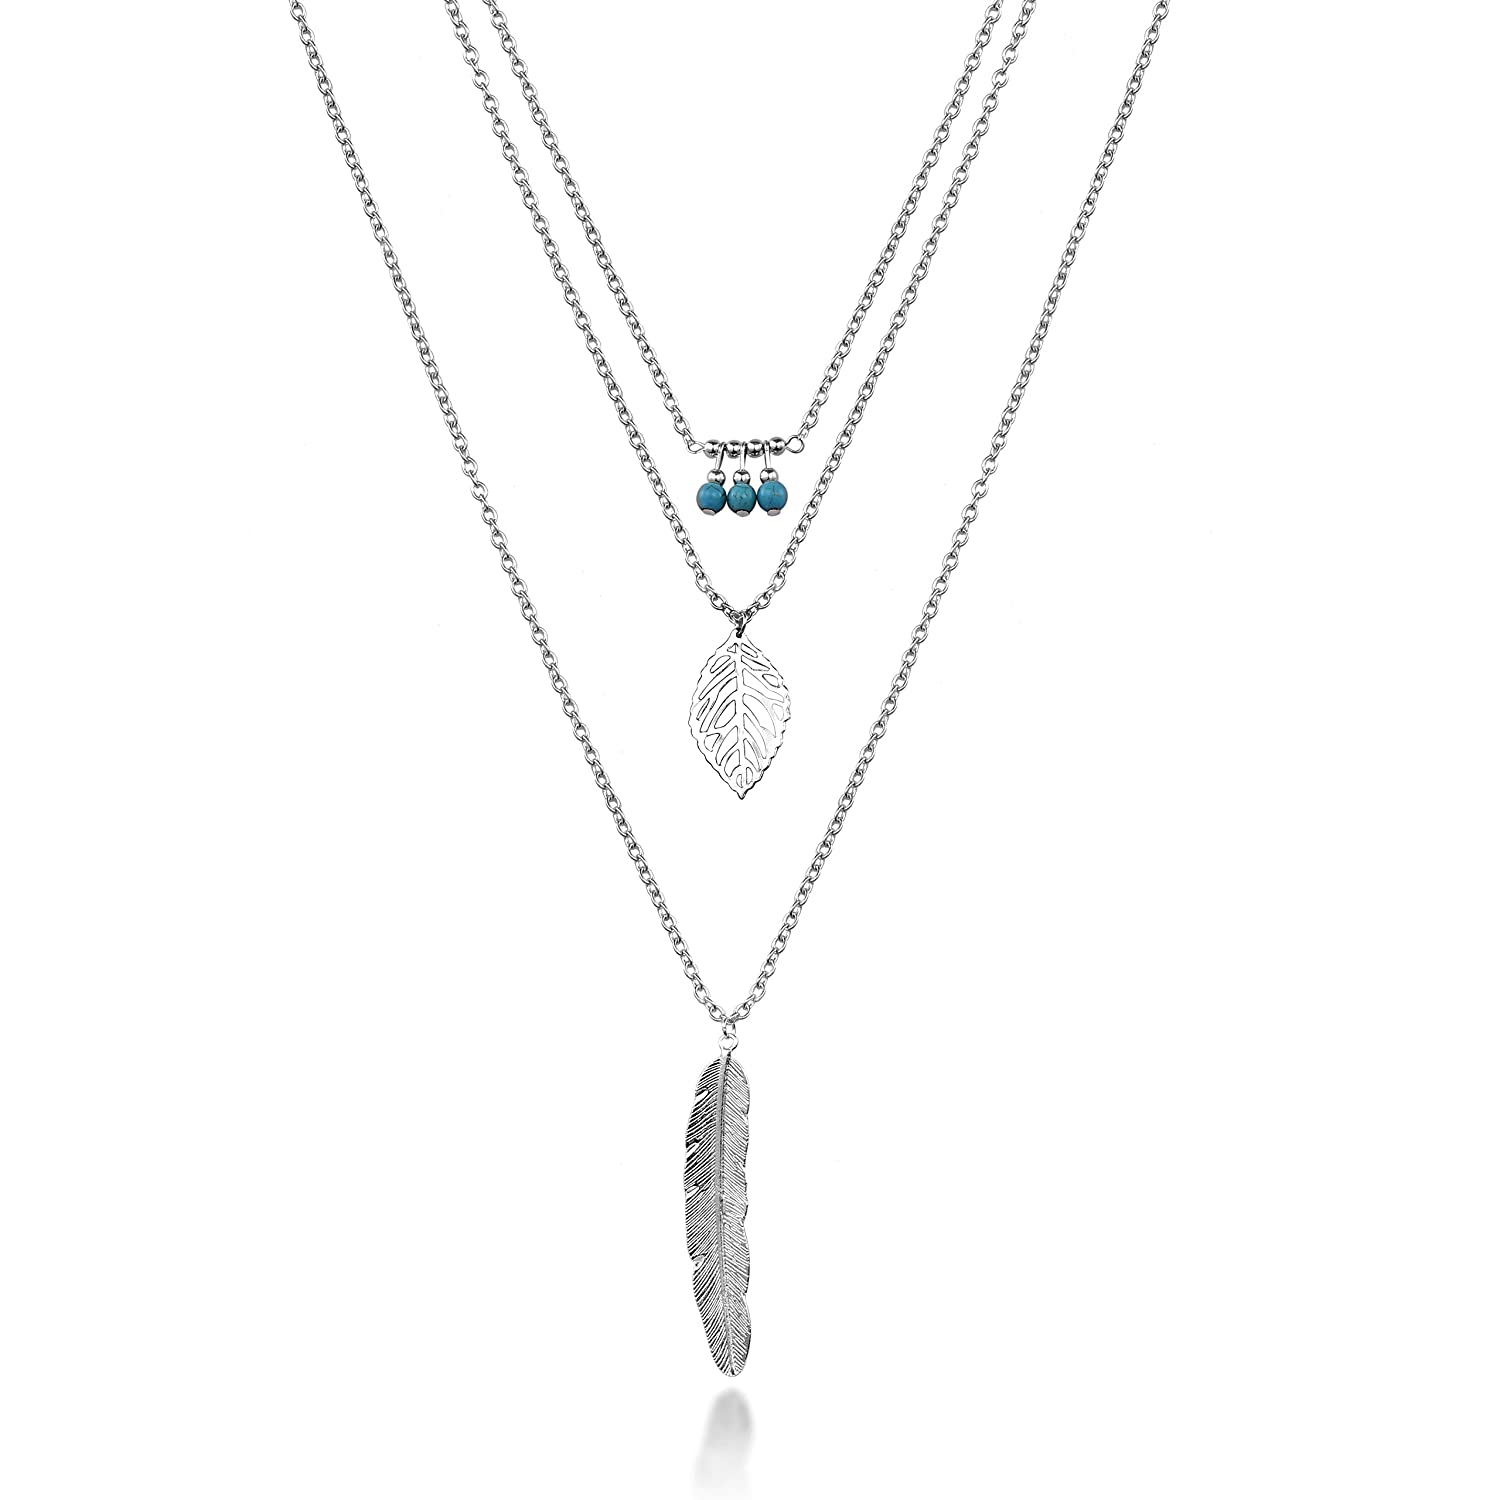 HYZ Boho Layered Necklace Pendant Moon Star Turquoise Feather Coin Chain Girls Women Jewelry Set (pack of 6) K4Cf2XC